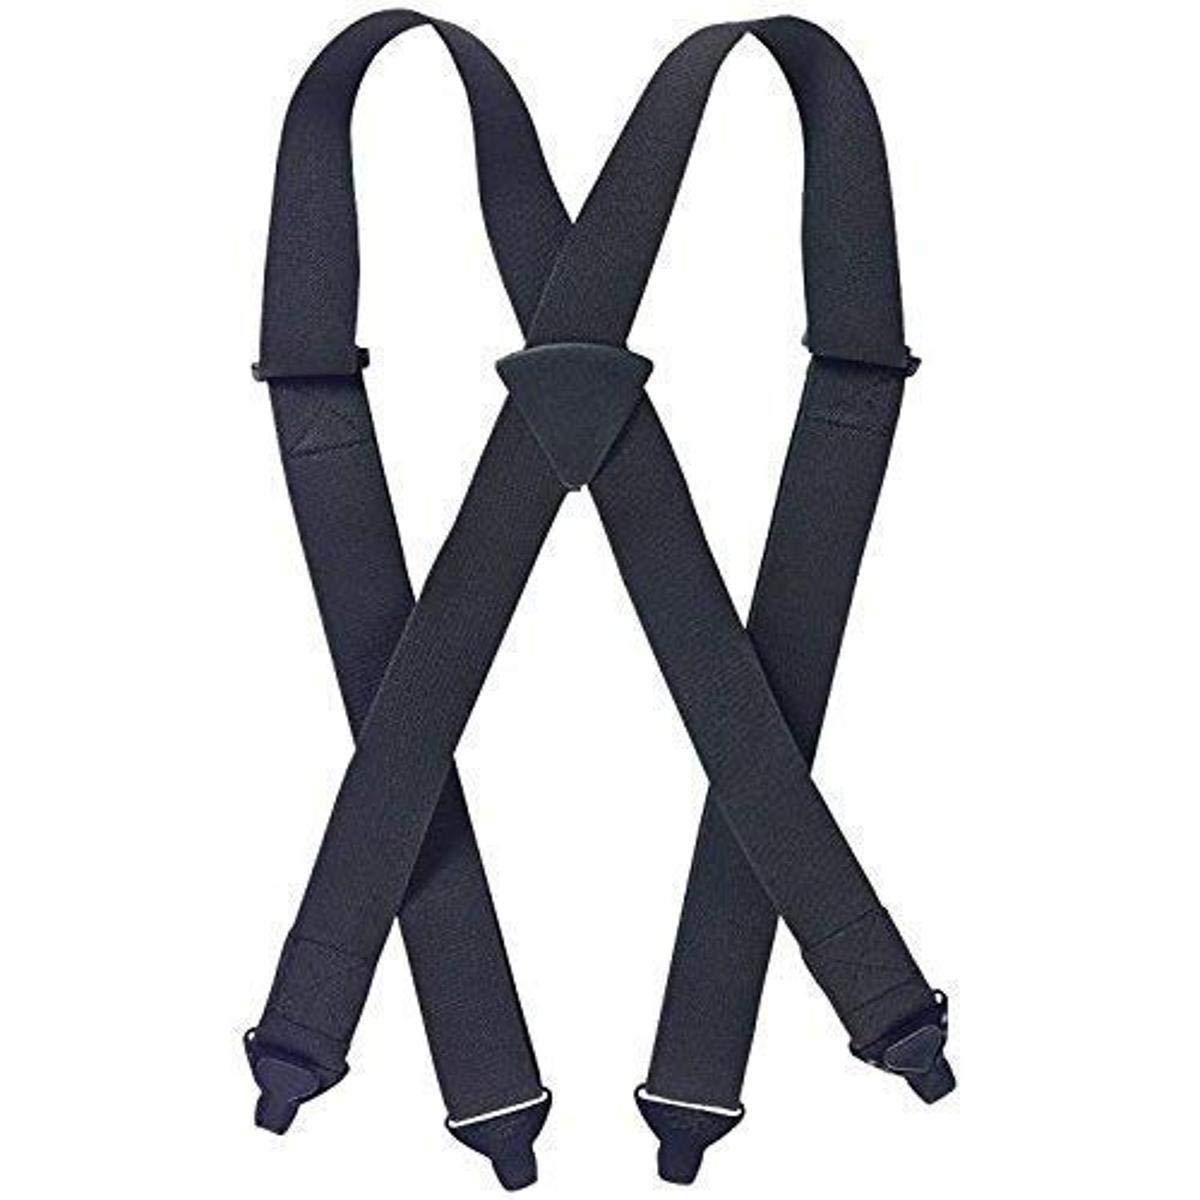 Non-Metal Clips and Adjusters HOMBRE Stripe Ski Pant SUSPENDERS or TSA Airport 2 Sizes for Better Fit